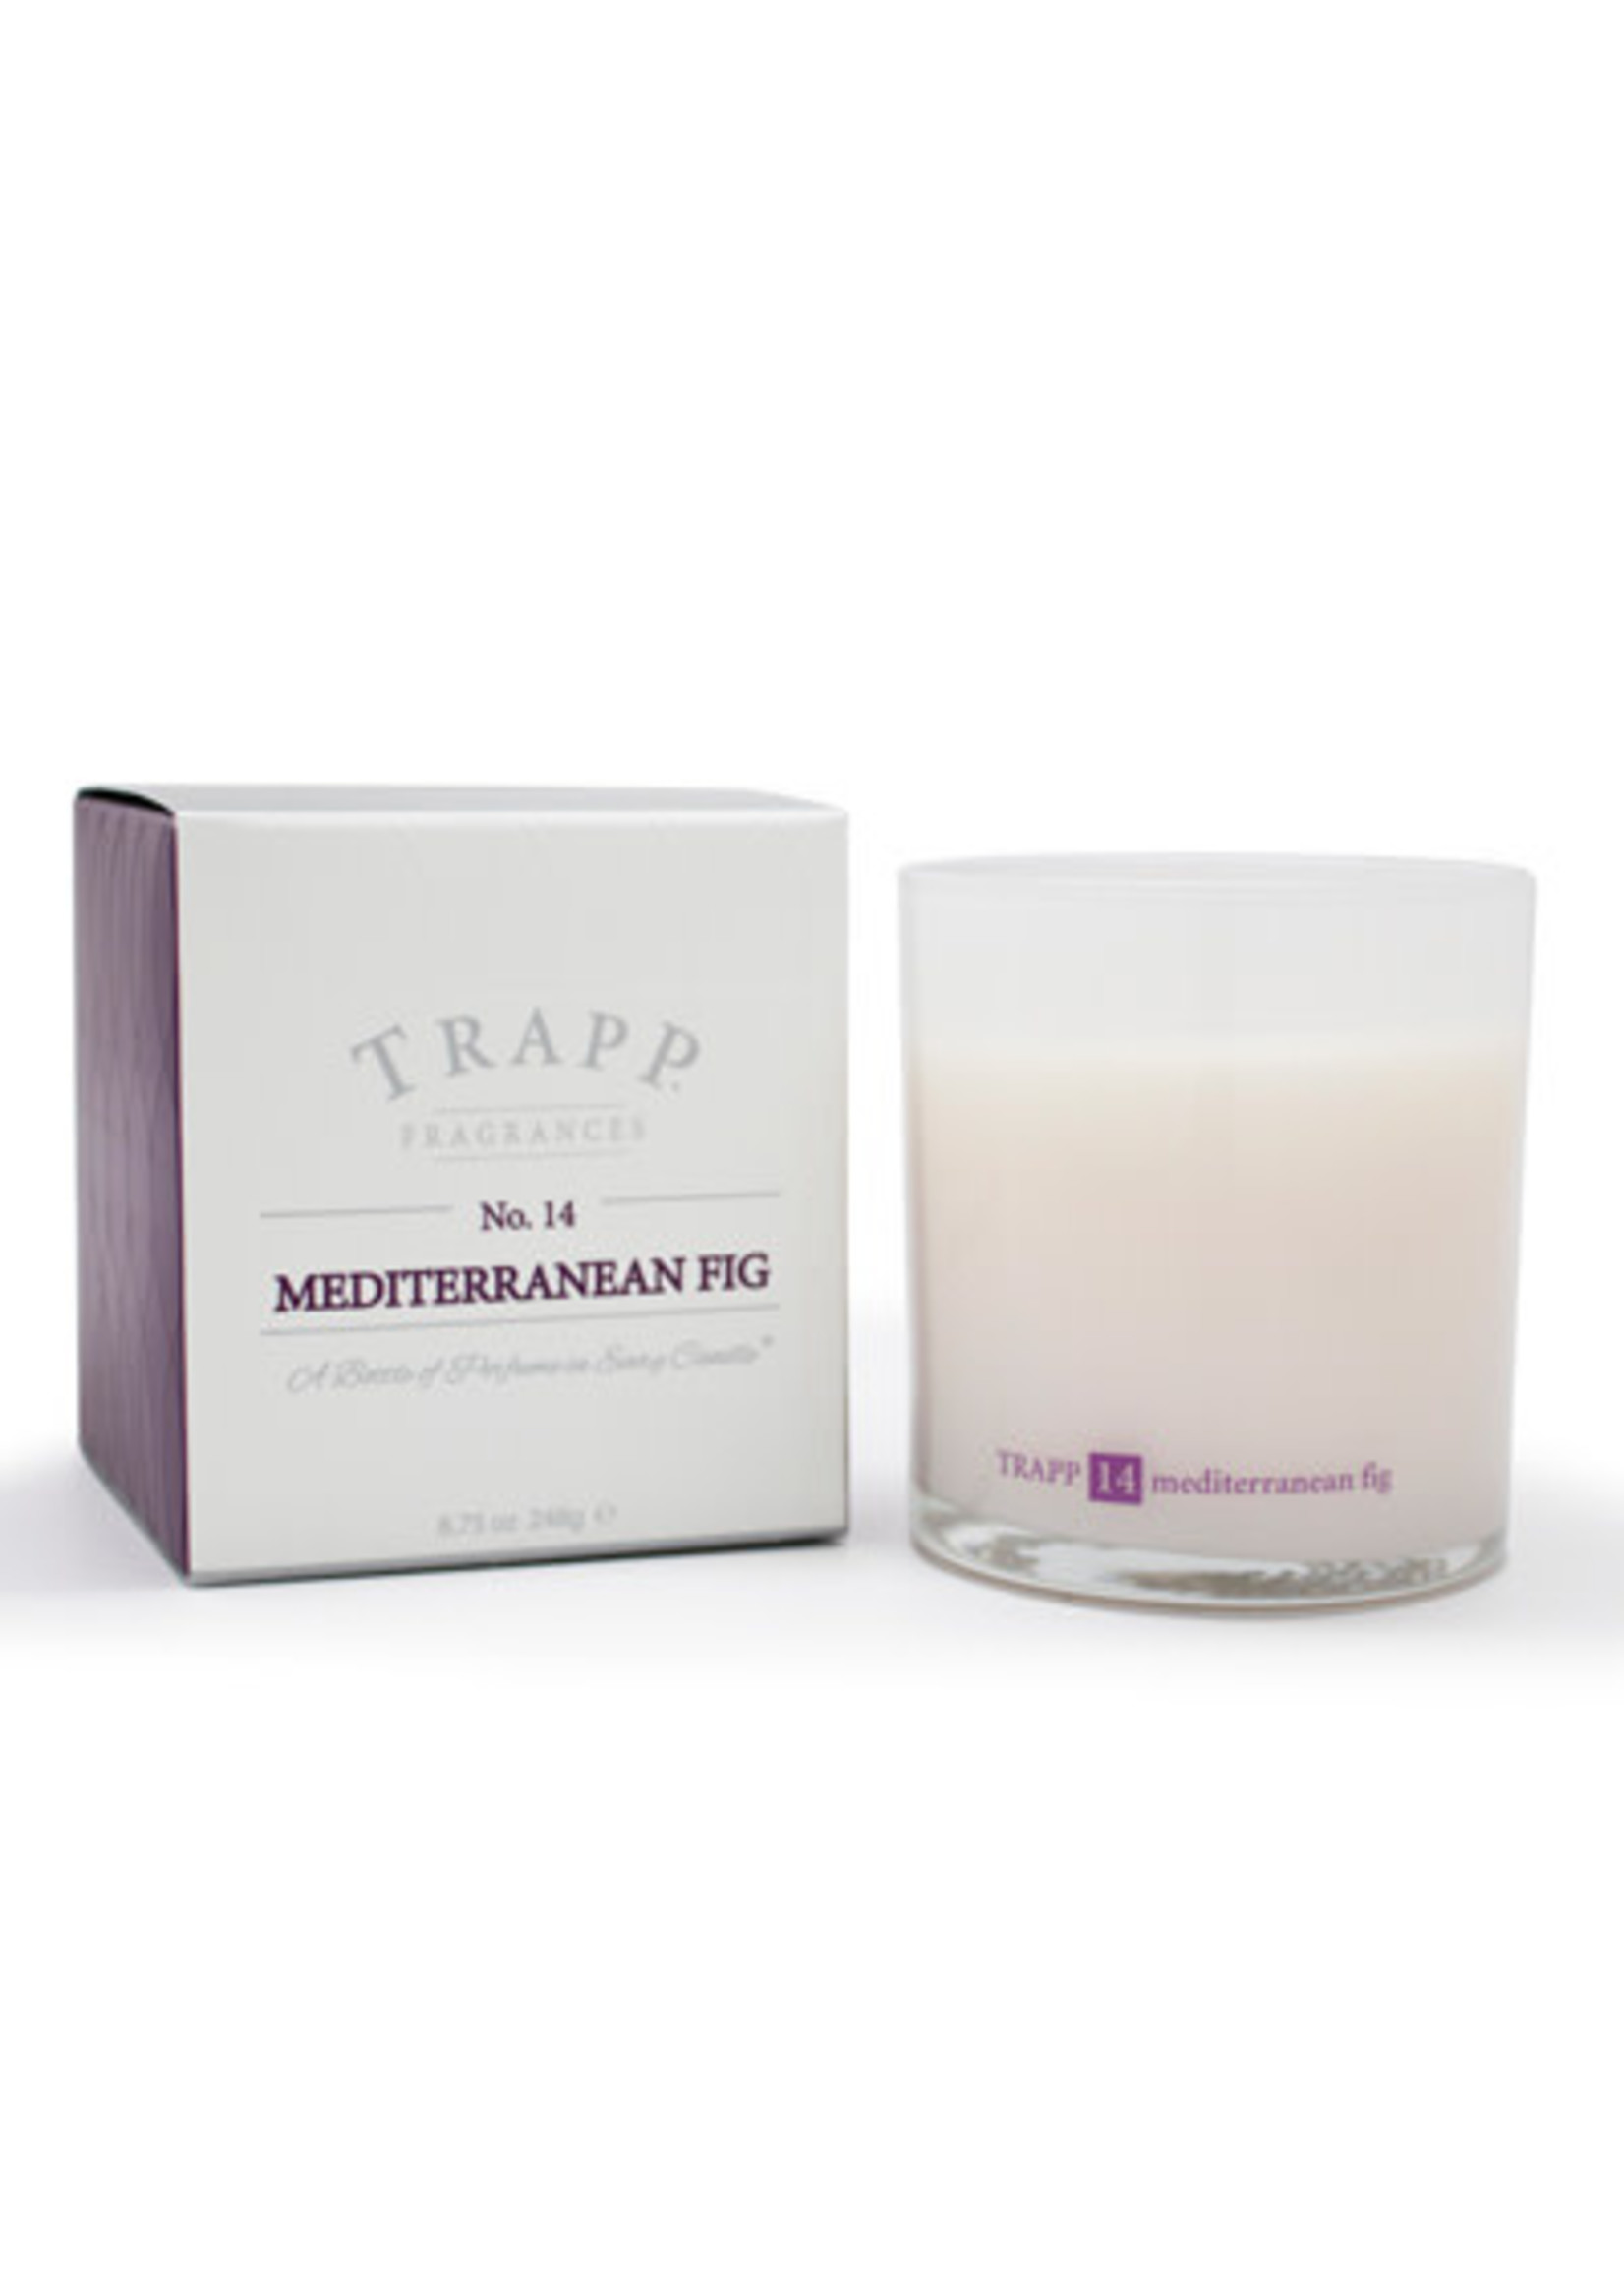 Trapp Candles Ambiance Collection - No. 14 Mediterranean Fig - 8.75 oz. Poured Candle